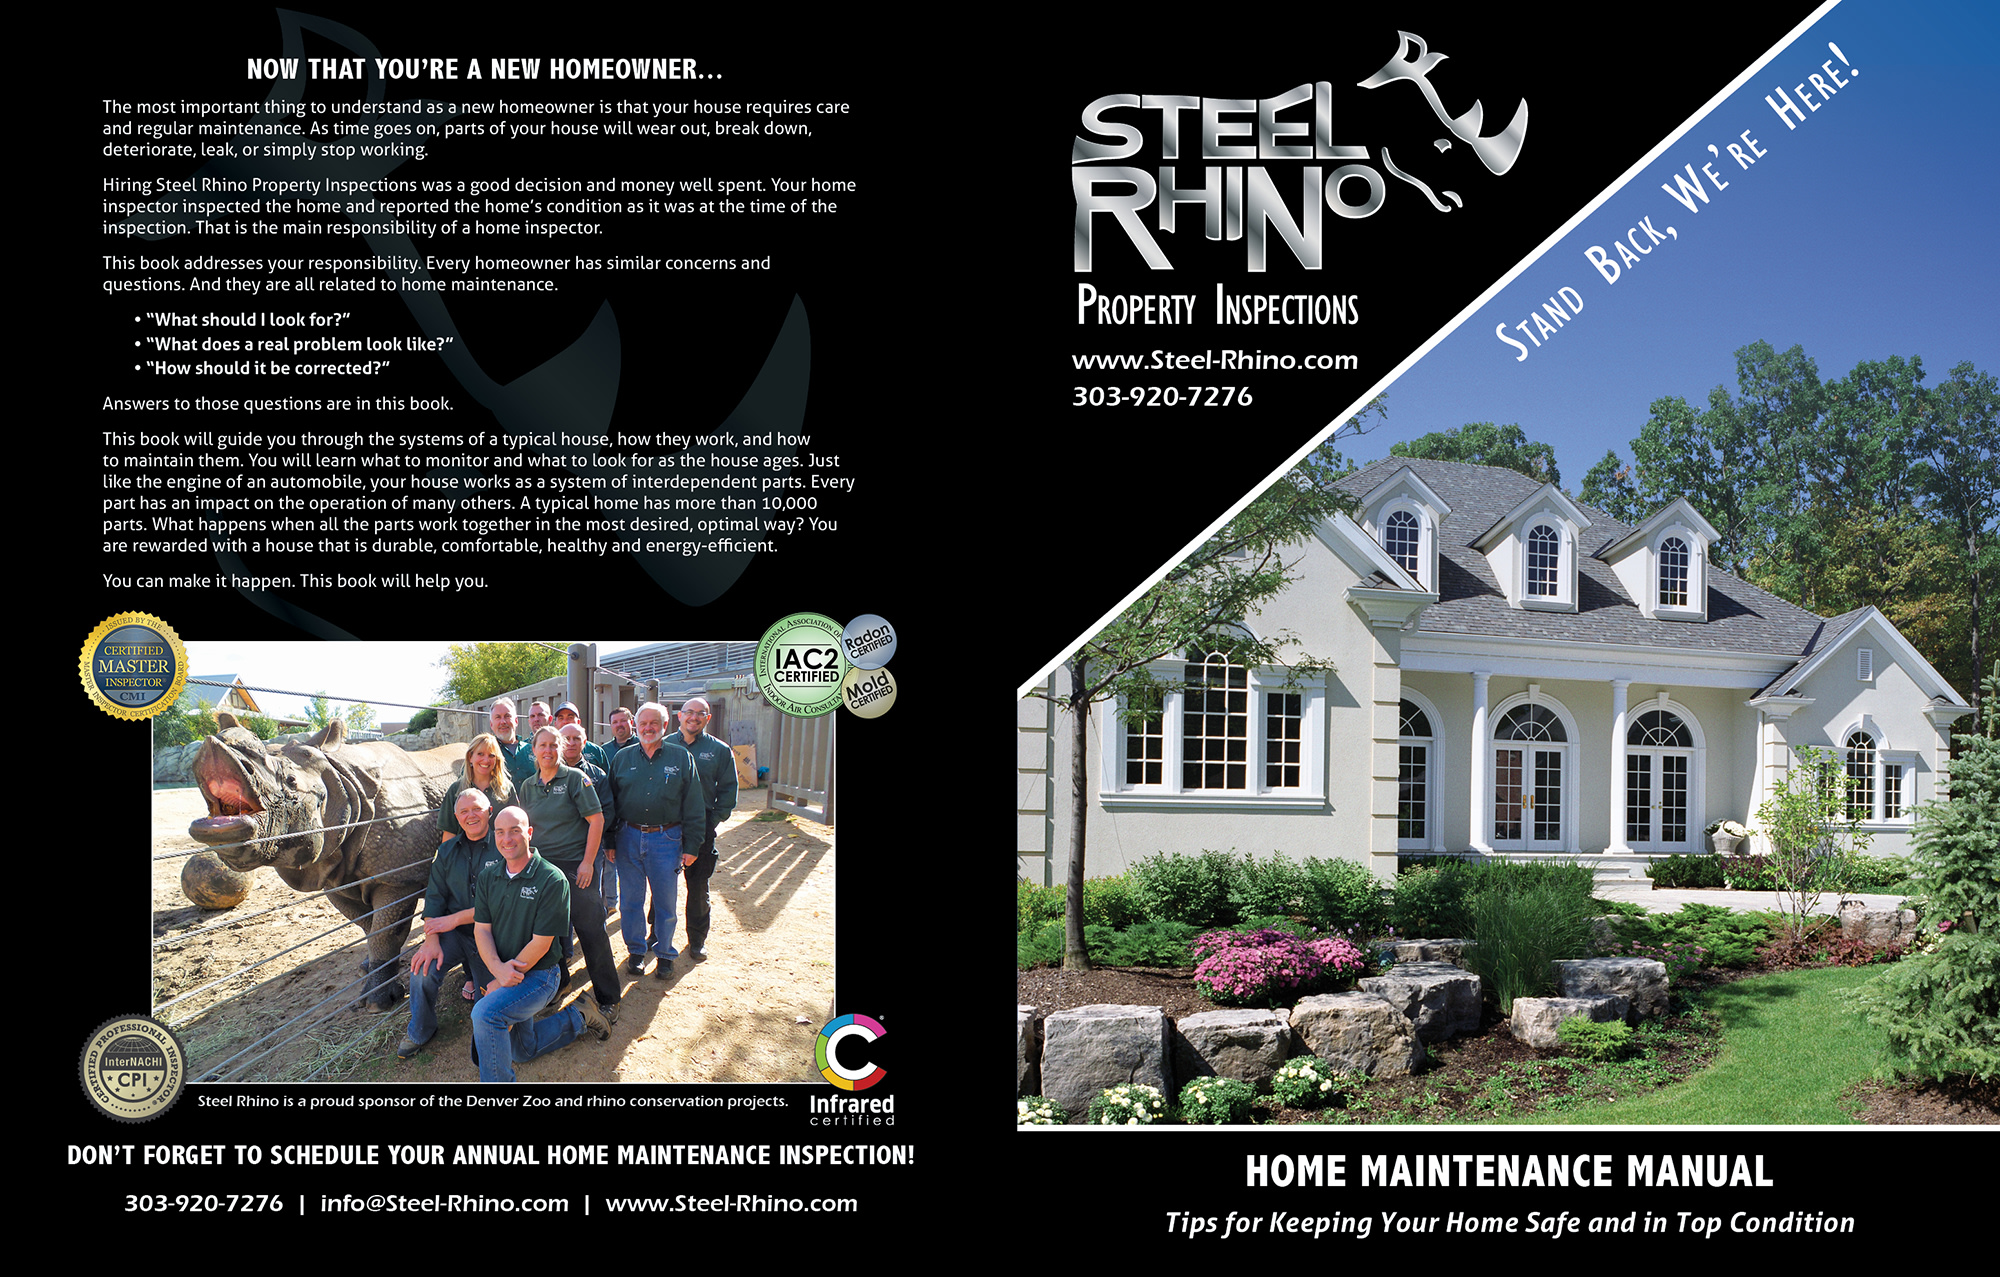 Custom Home Maintenance Book for Steel Rhino Property Inspections.